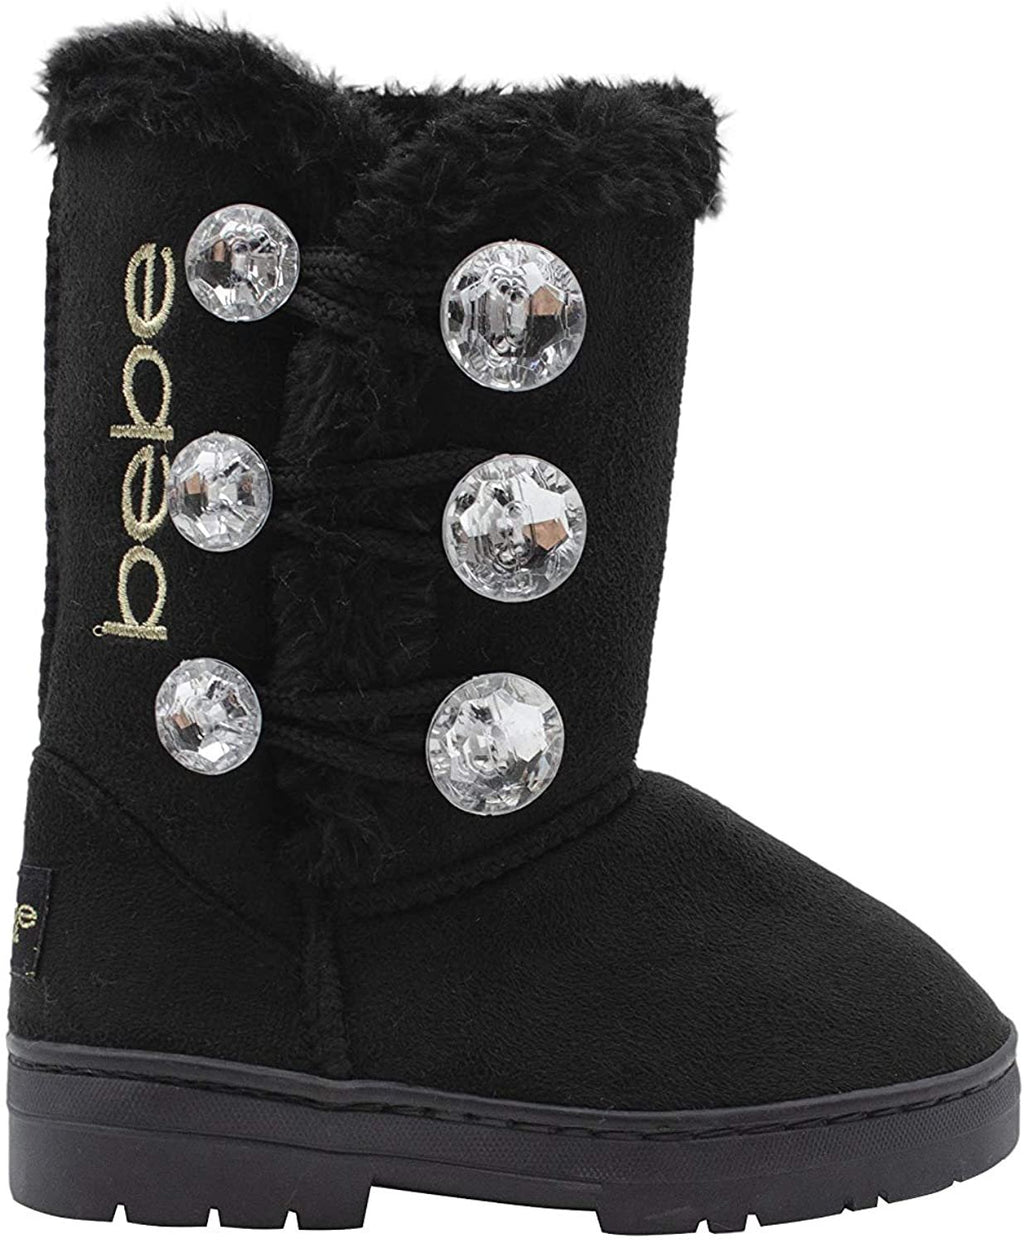 Bebe Girls' Big Kid Slip On Warm Suede Winter Boots with Rhinestone Buttons and Fur Trim